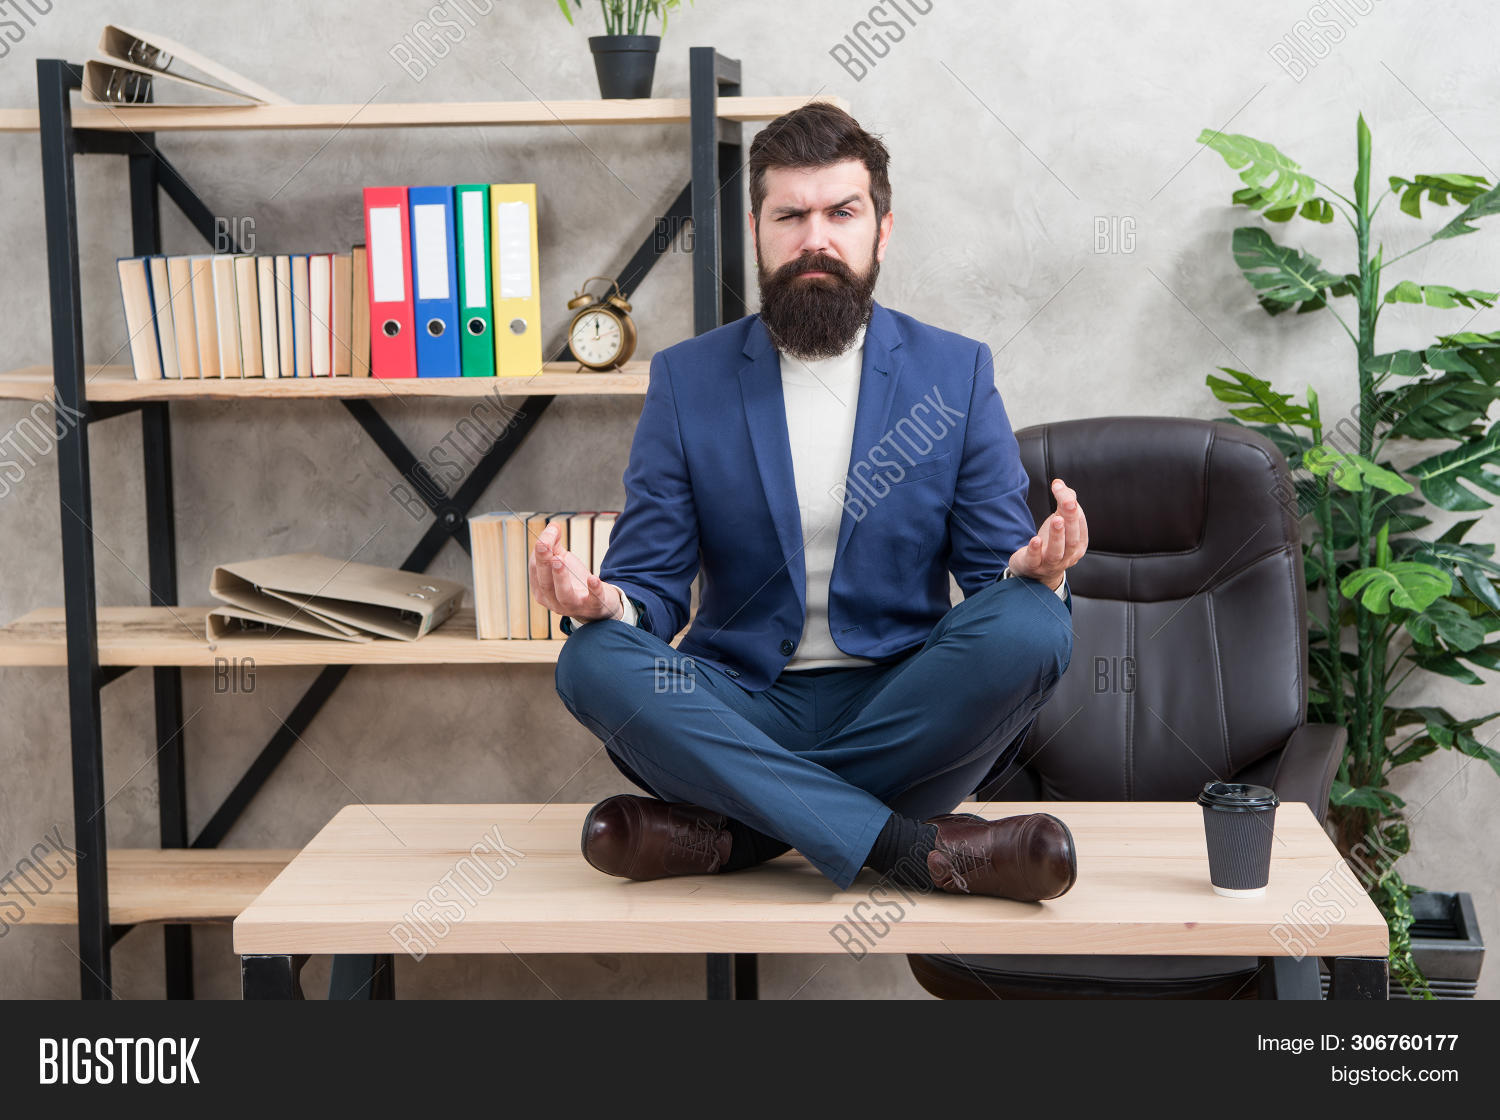 balance,bearded,boss,burnout,business,businessman,calm,care,caucasian,concentration,concept,day,executive,formal,healthy,help,lifestyle,lotus,man,manager,meditate,meditating,meditation,mental,office,peace,peaceful,pose,practice,prevent,professional,psychological,relax,relaxation,relaxing,rest,self,sit,stress,success,suit,techniques,to,way,wellbeing,worker,yoga